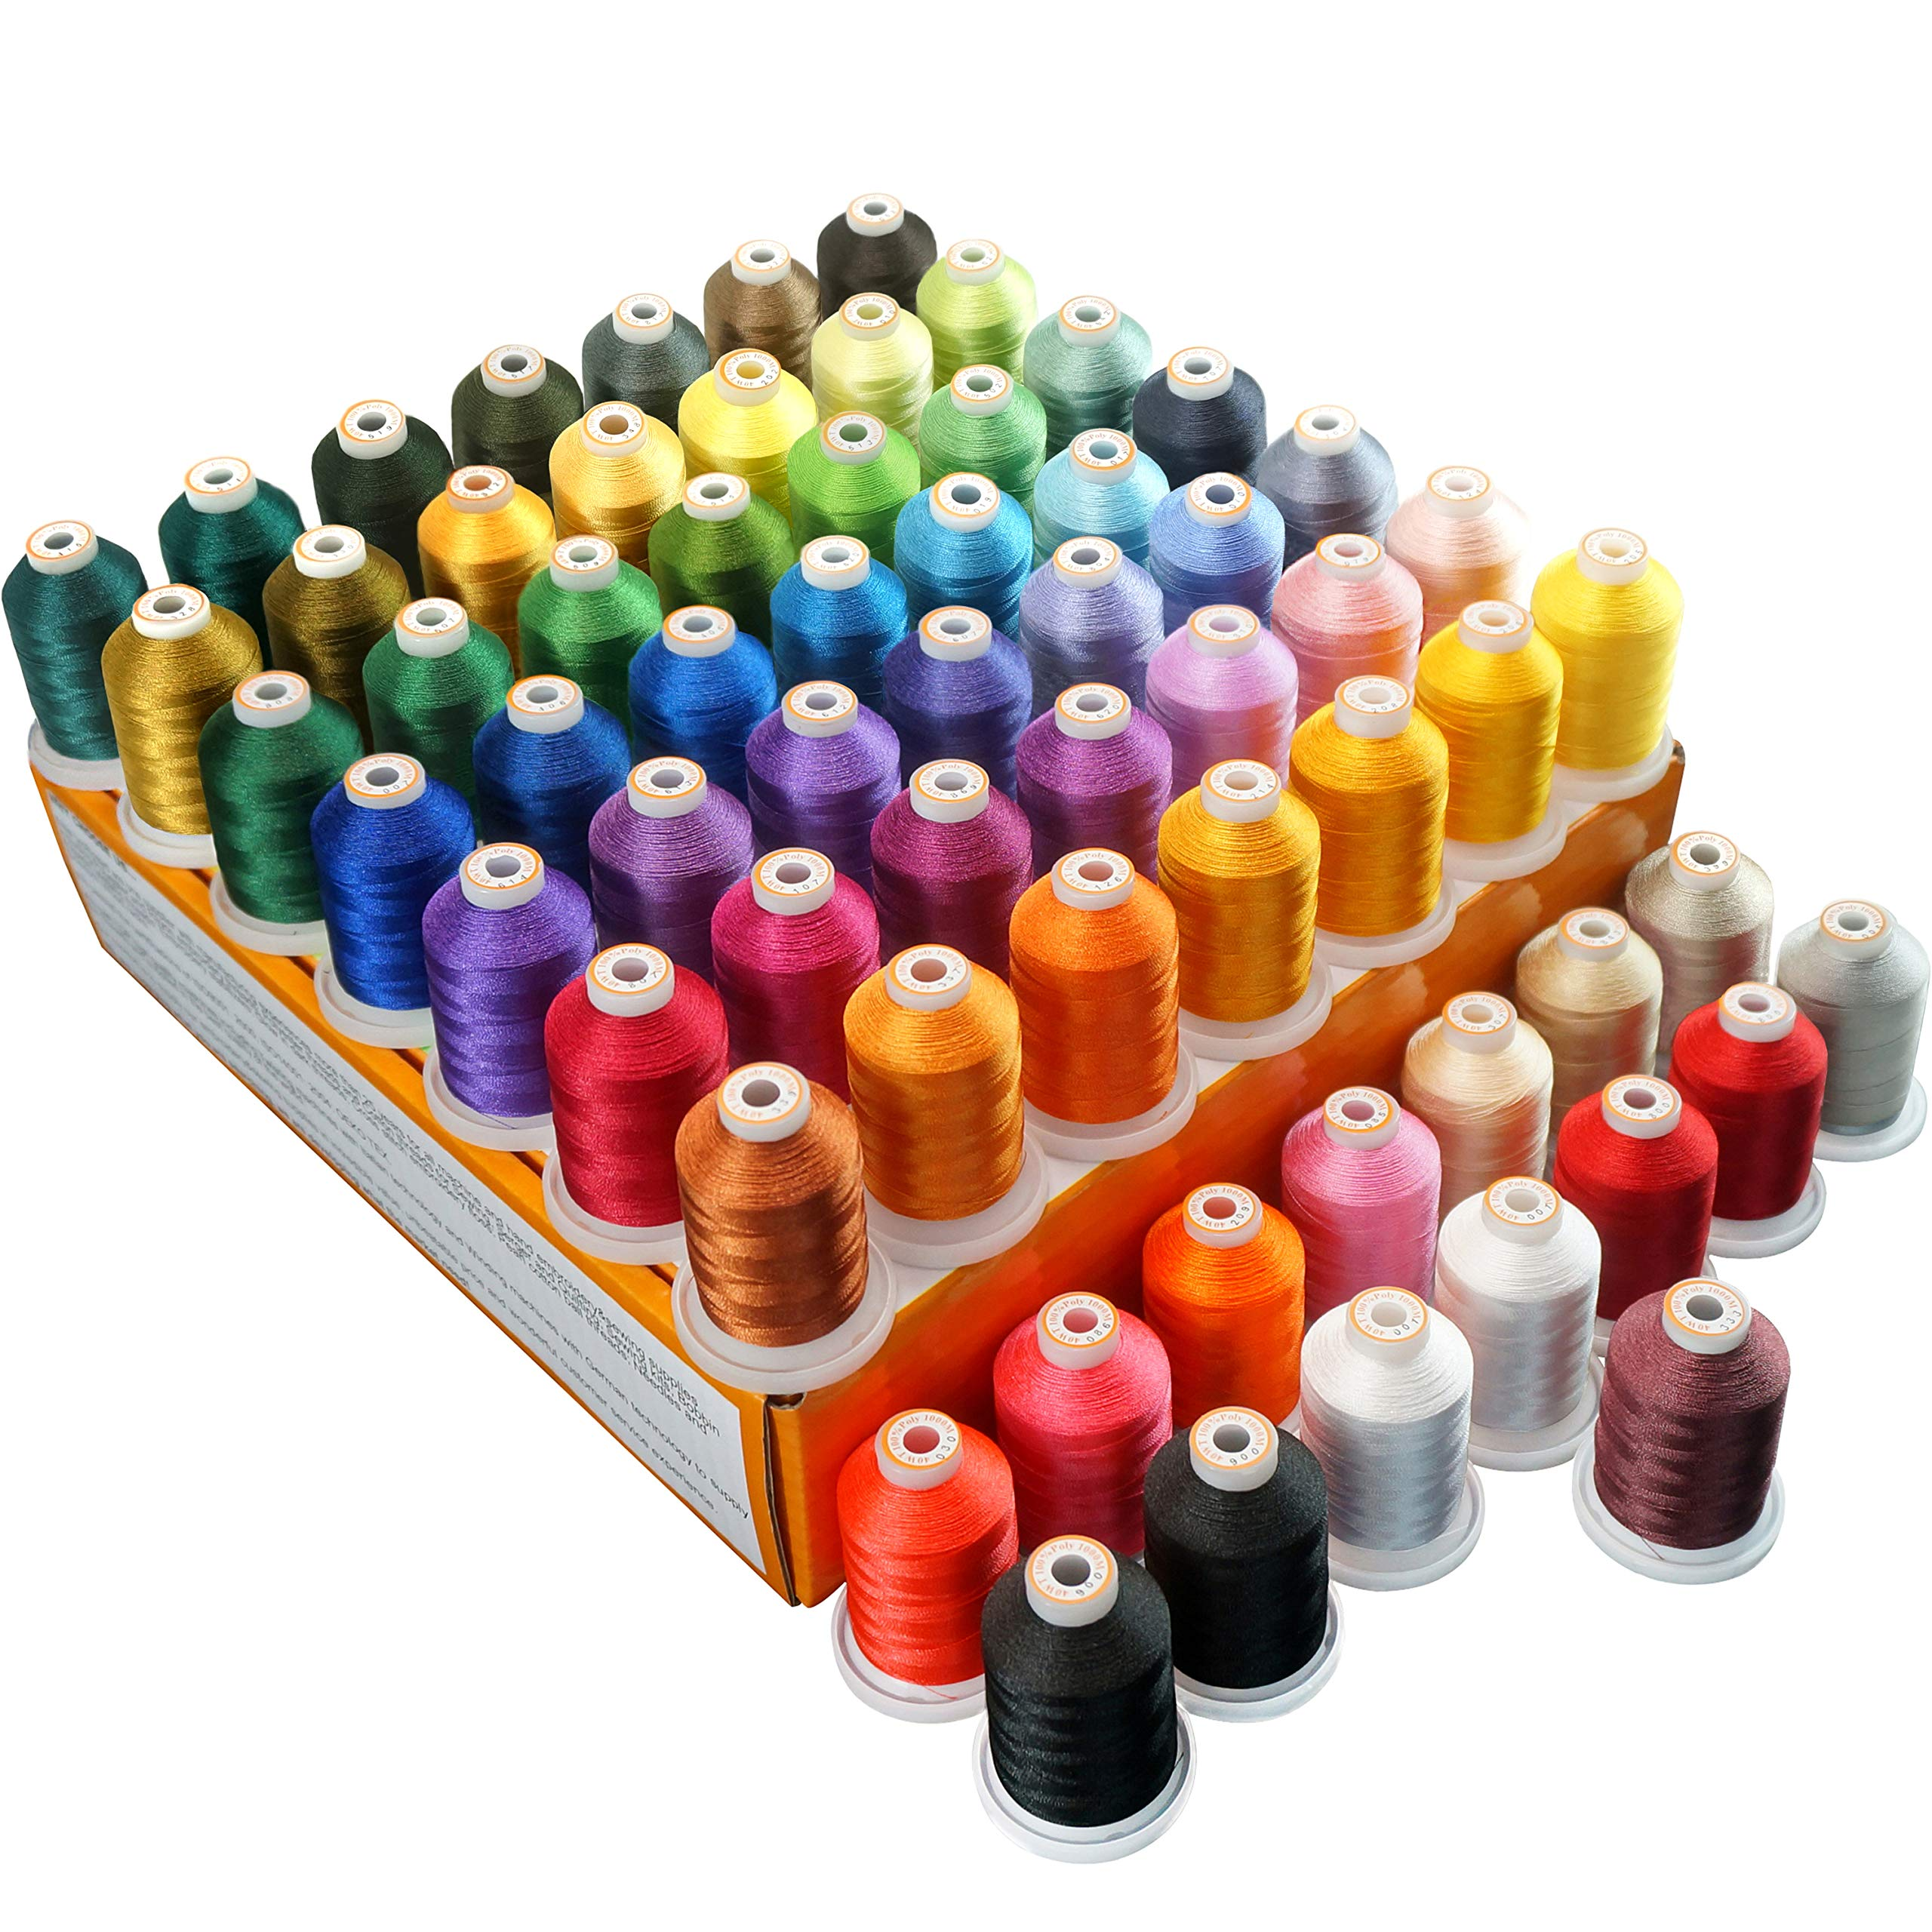 New brothread Embroidery Professional Embroiderer